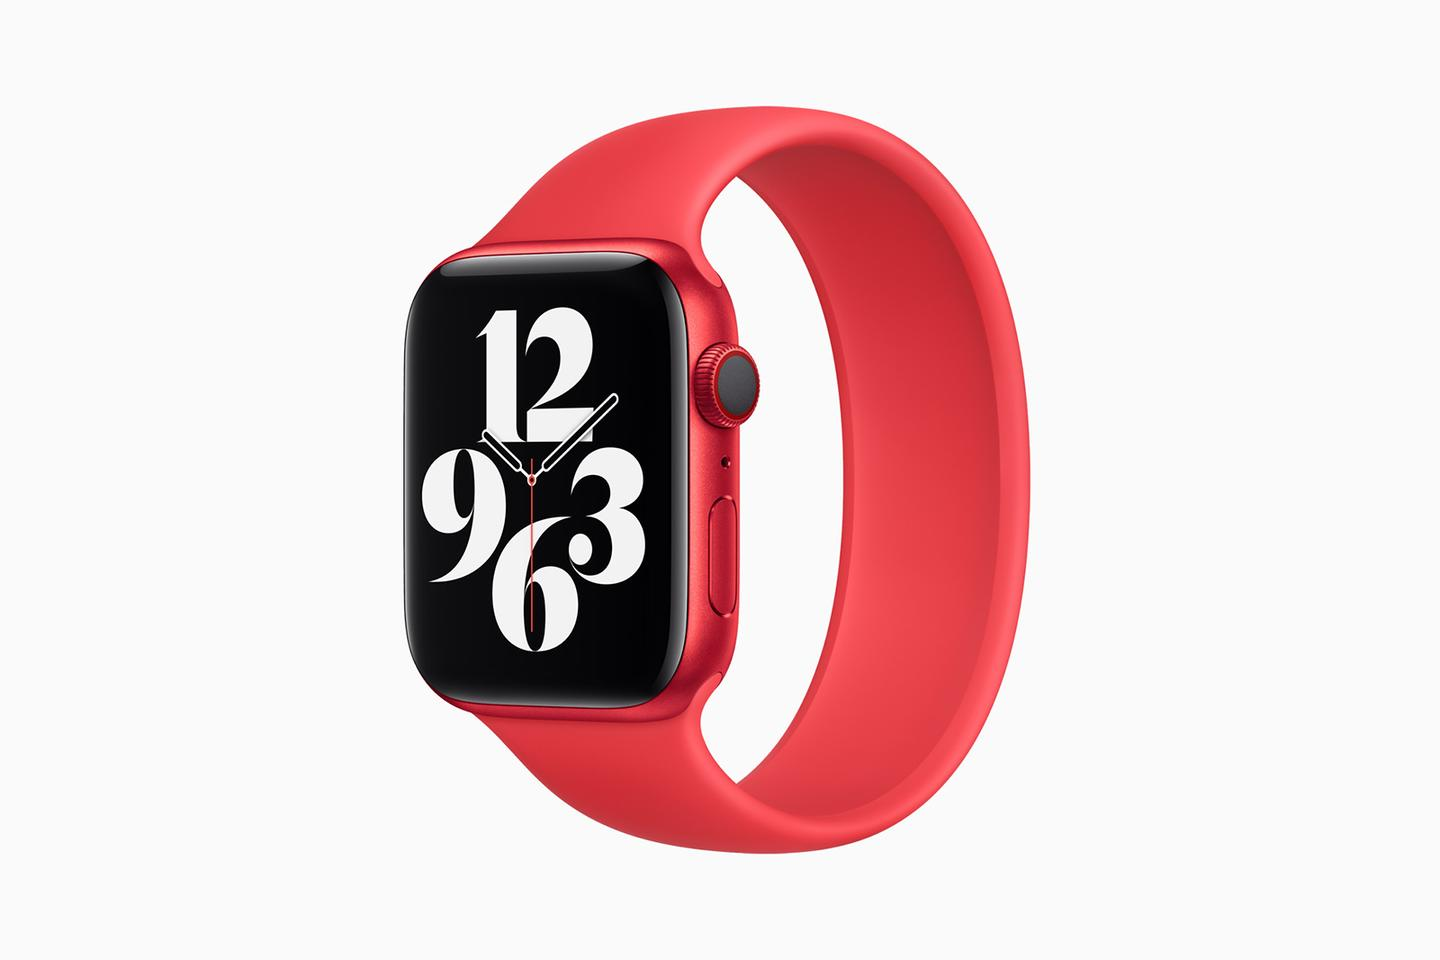 Apple has introduced a new loop band with no clasp or buckle